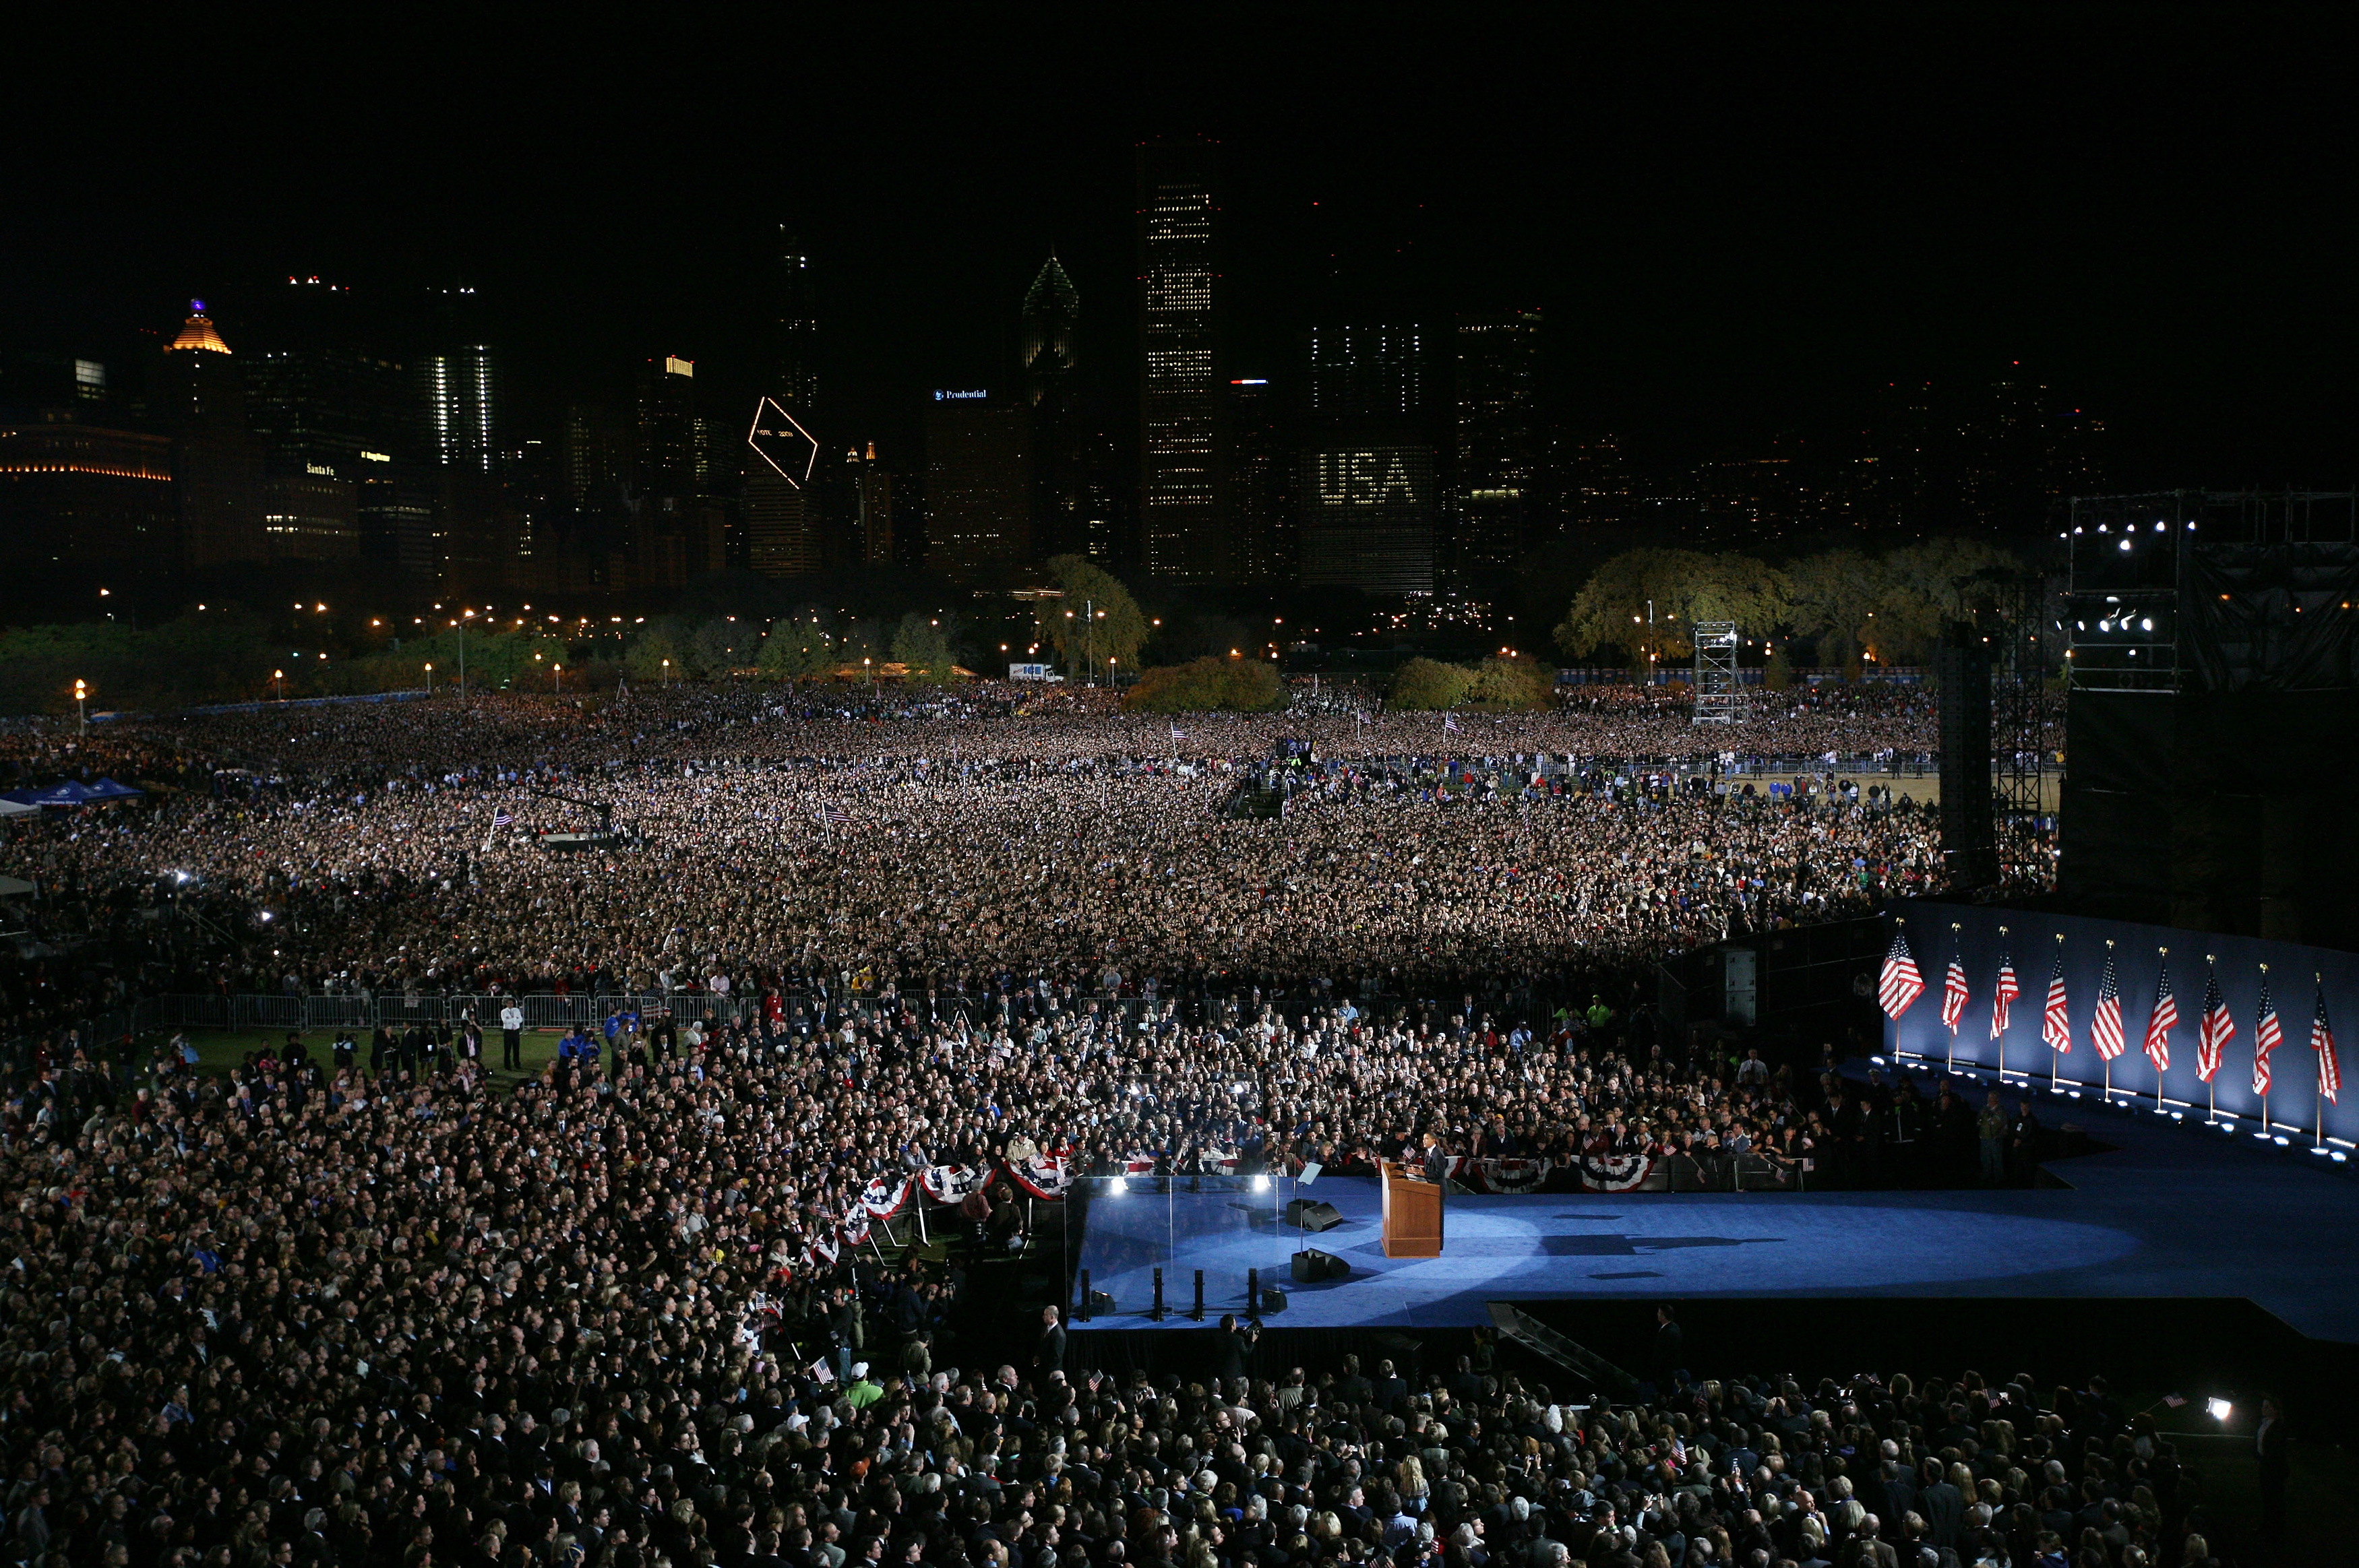 U.S. President elect Barack Obama gives his victory speech to supporters during an election night gathering in Grant Park Nov. 4, 2008, in Chicago.